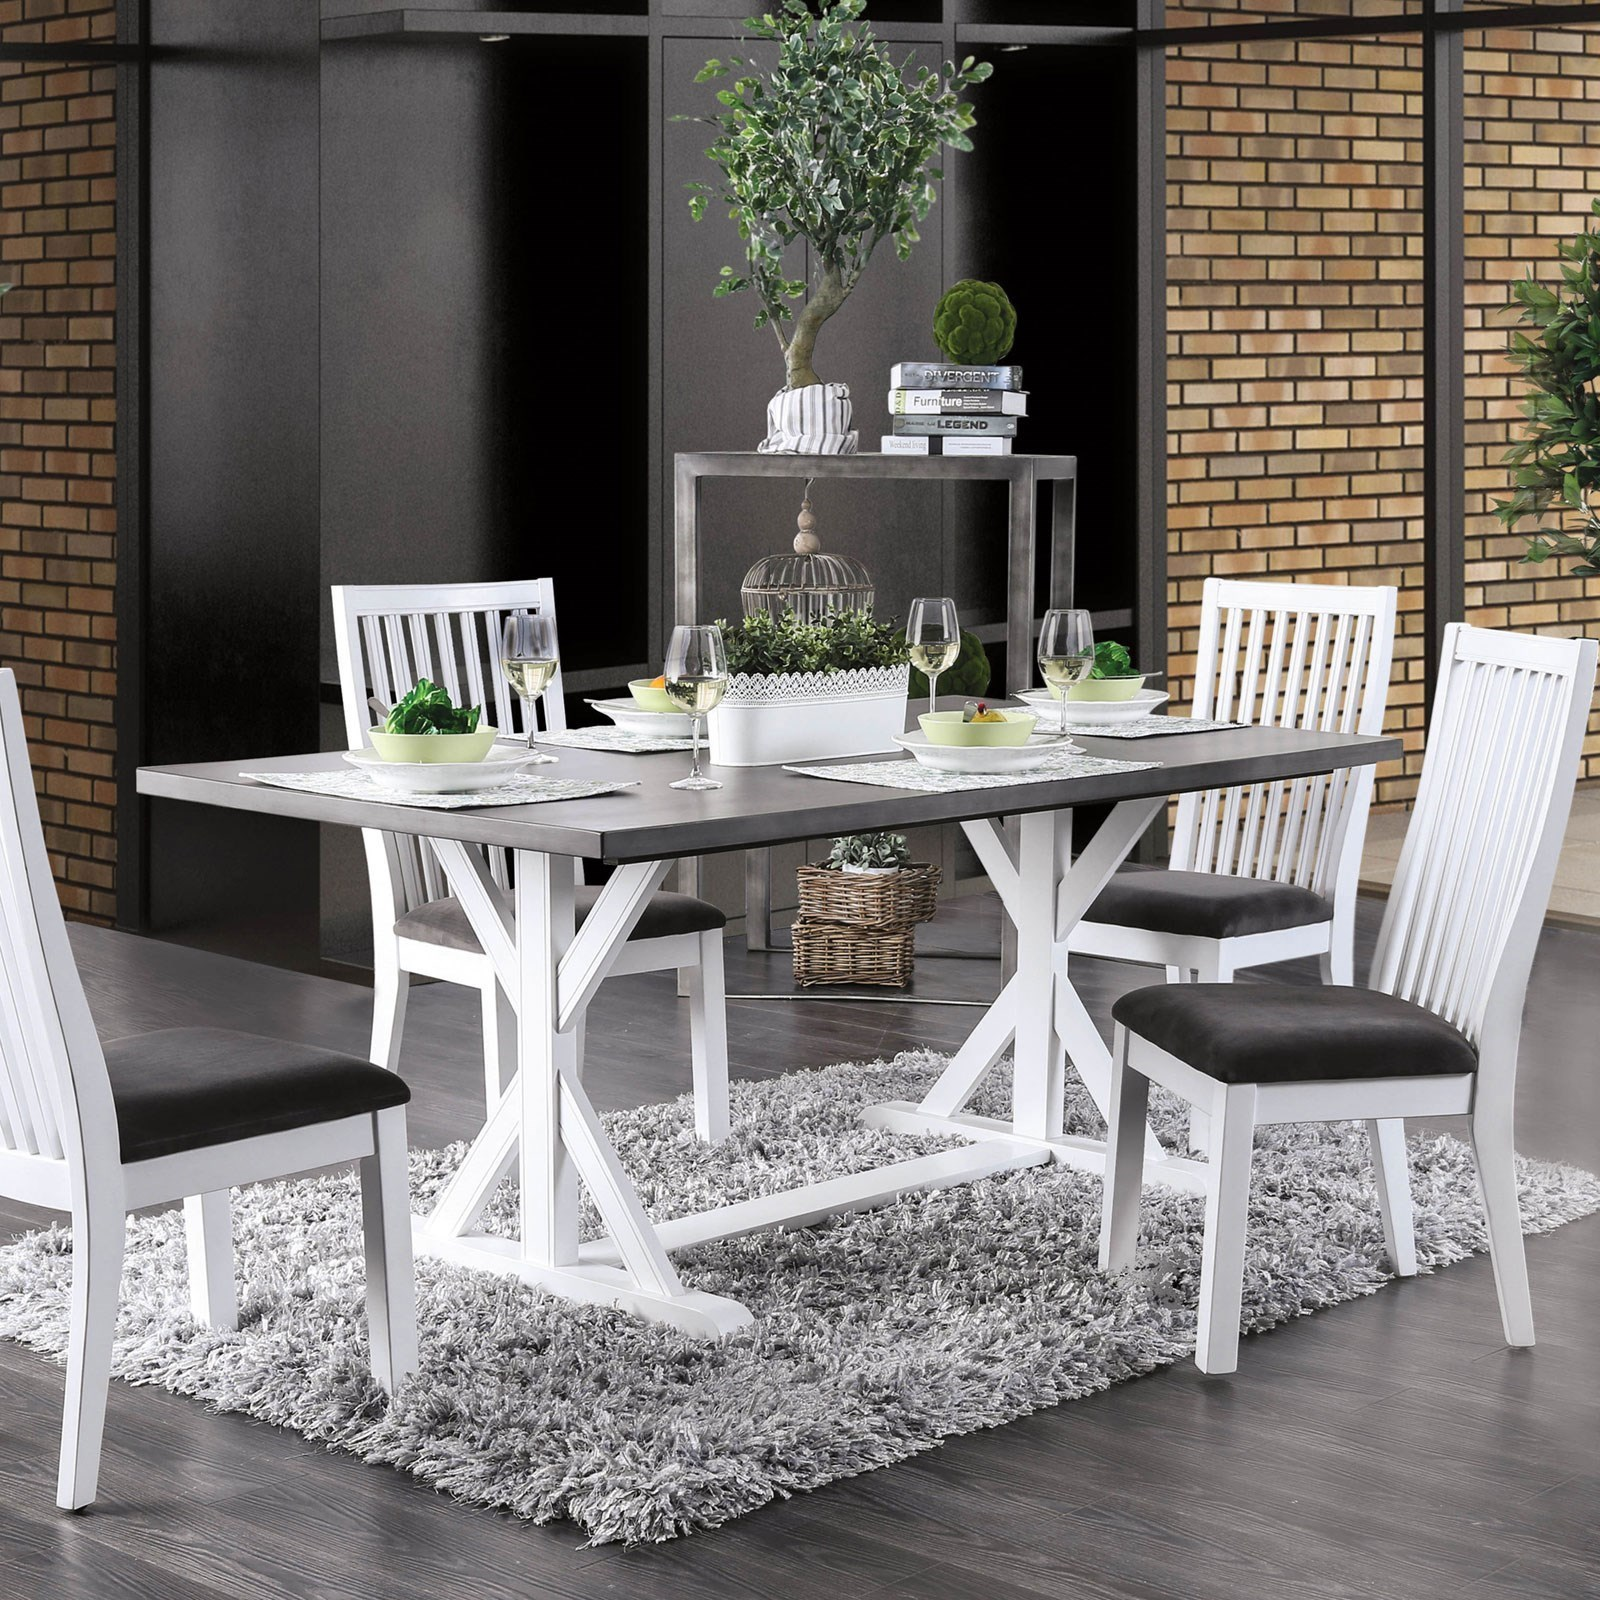 Kathleen Dining Table at Household Furniture